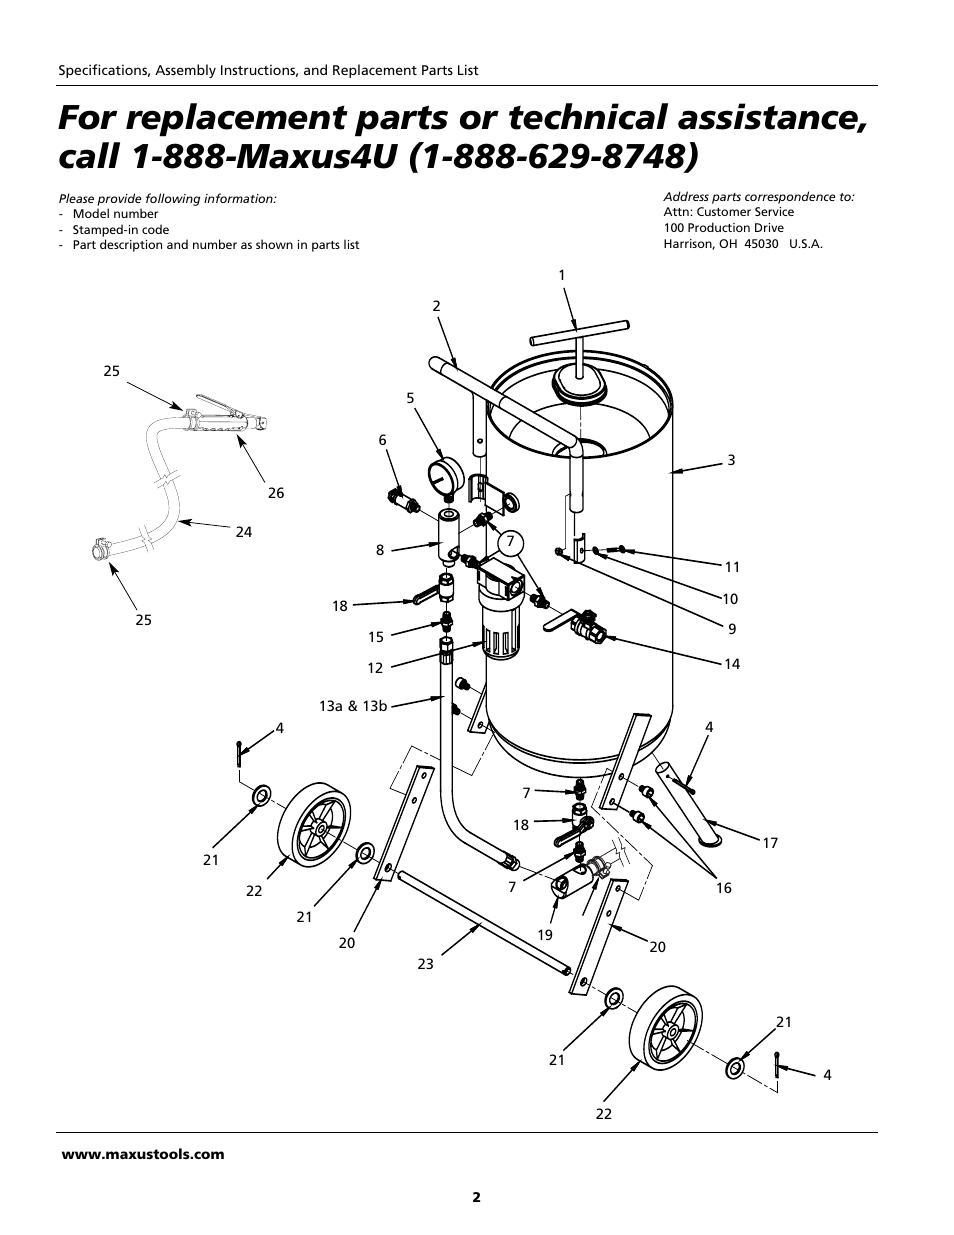 Maxus Parts Diagram Schematics Wiring Diagrams Ldv Central Locking Tools Mxs21002 User Manual Page 2 8 Also For Mxs21003 Rh Manualsdir Com Helios